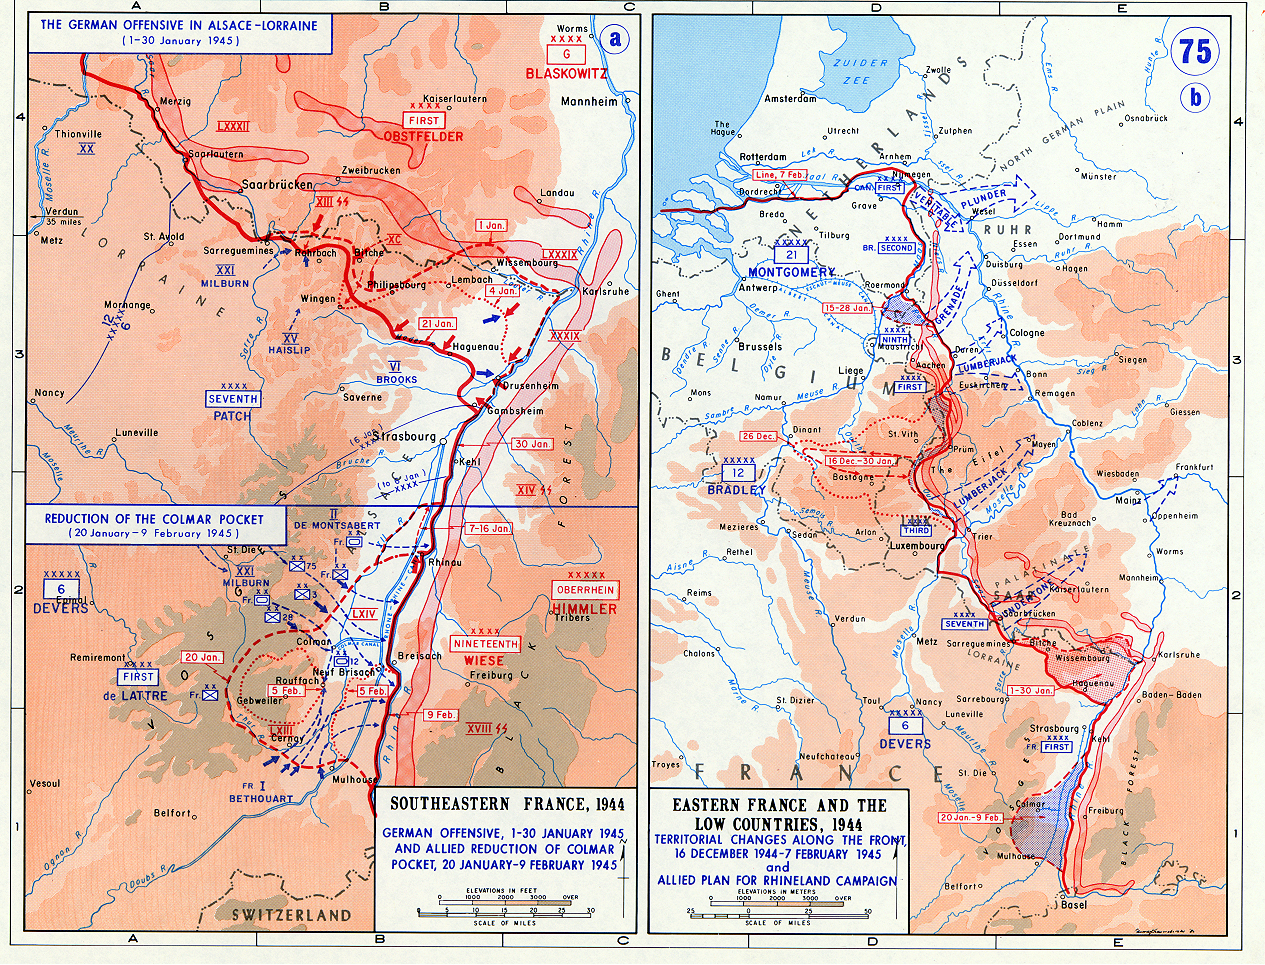 germany the nazis maps german offensive in alsace lorraine